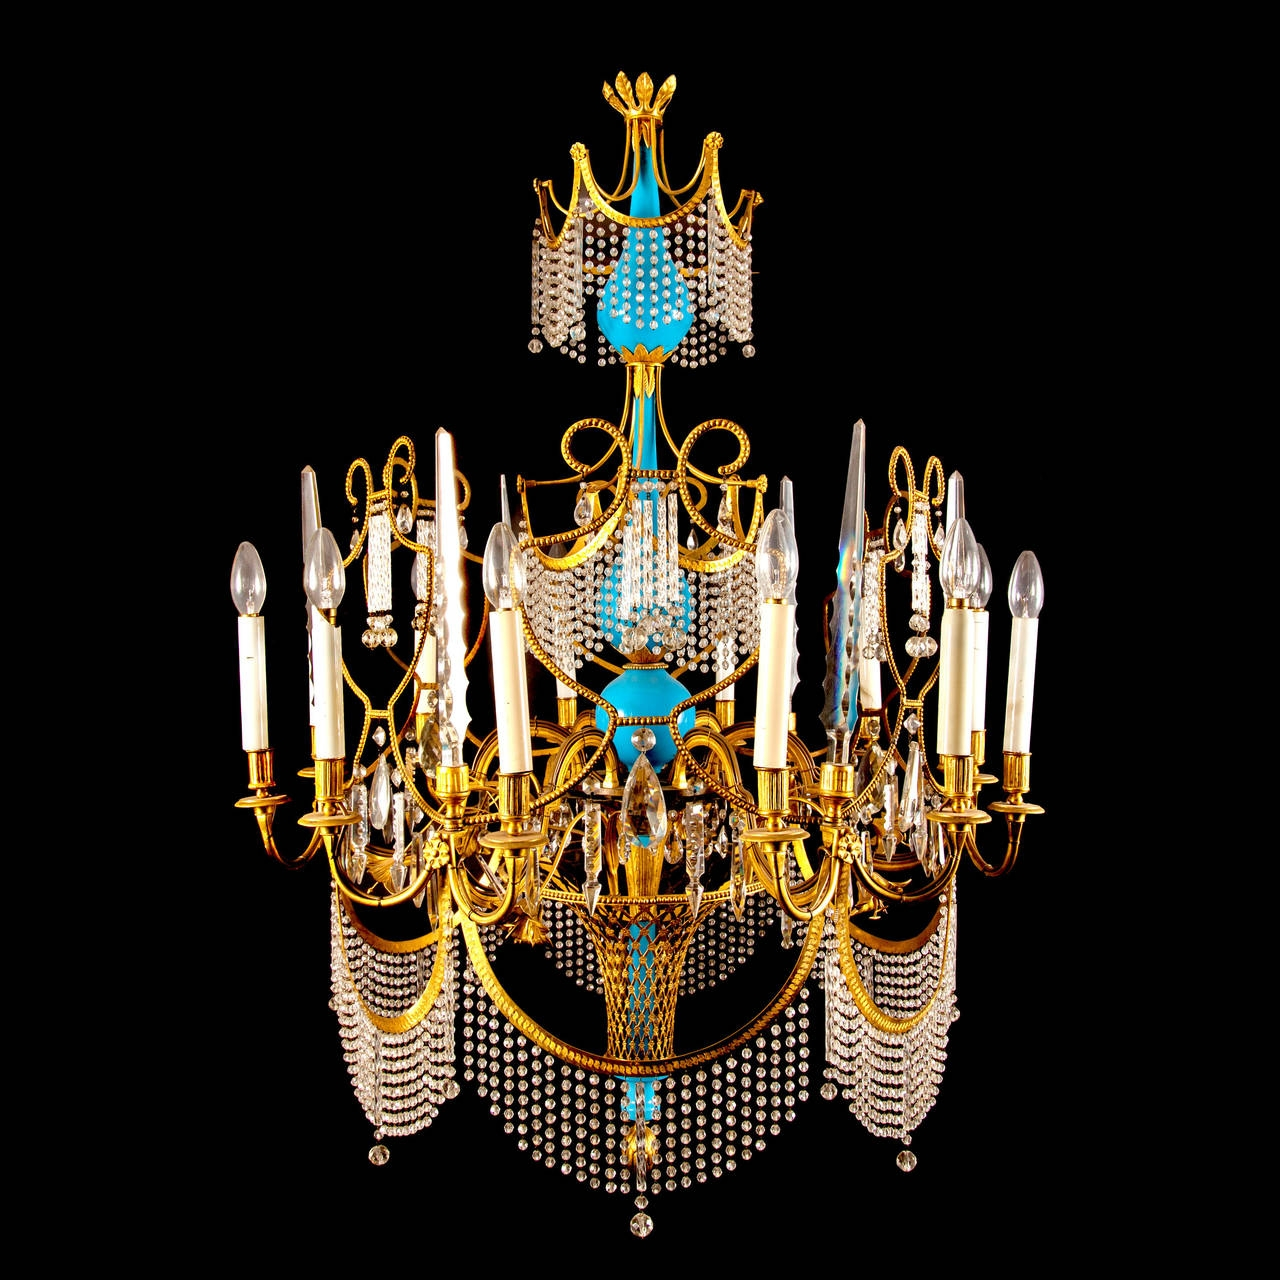 Russian Ormolu Cut Glass And Blue Porcelain Empire Style Antique Intended For Turquoise Empire Chandeliers (Image 23 of 25)